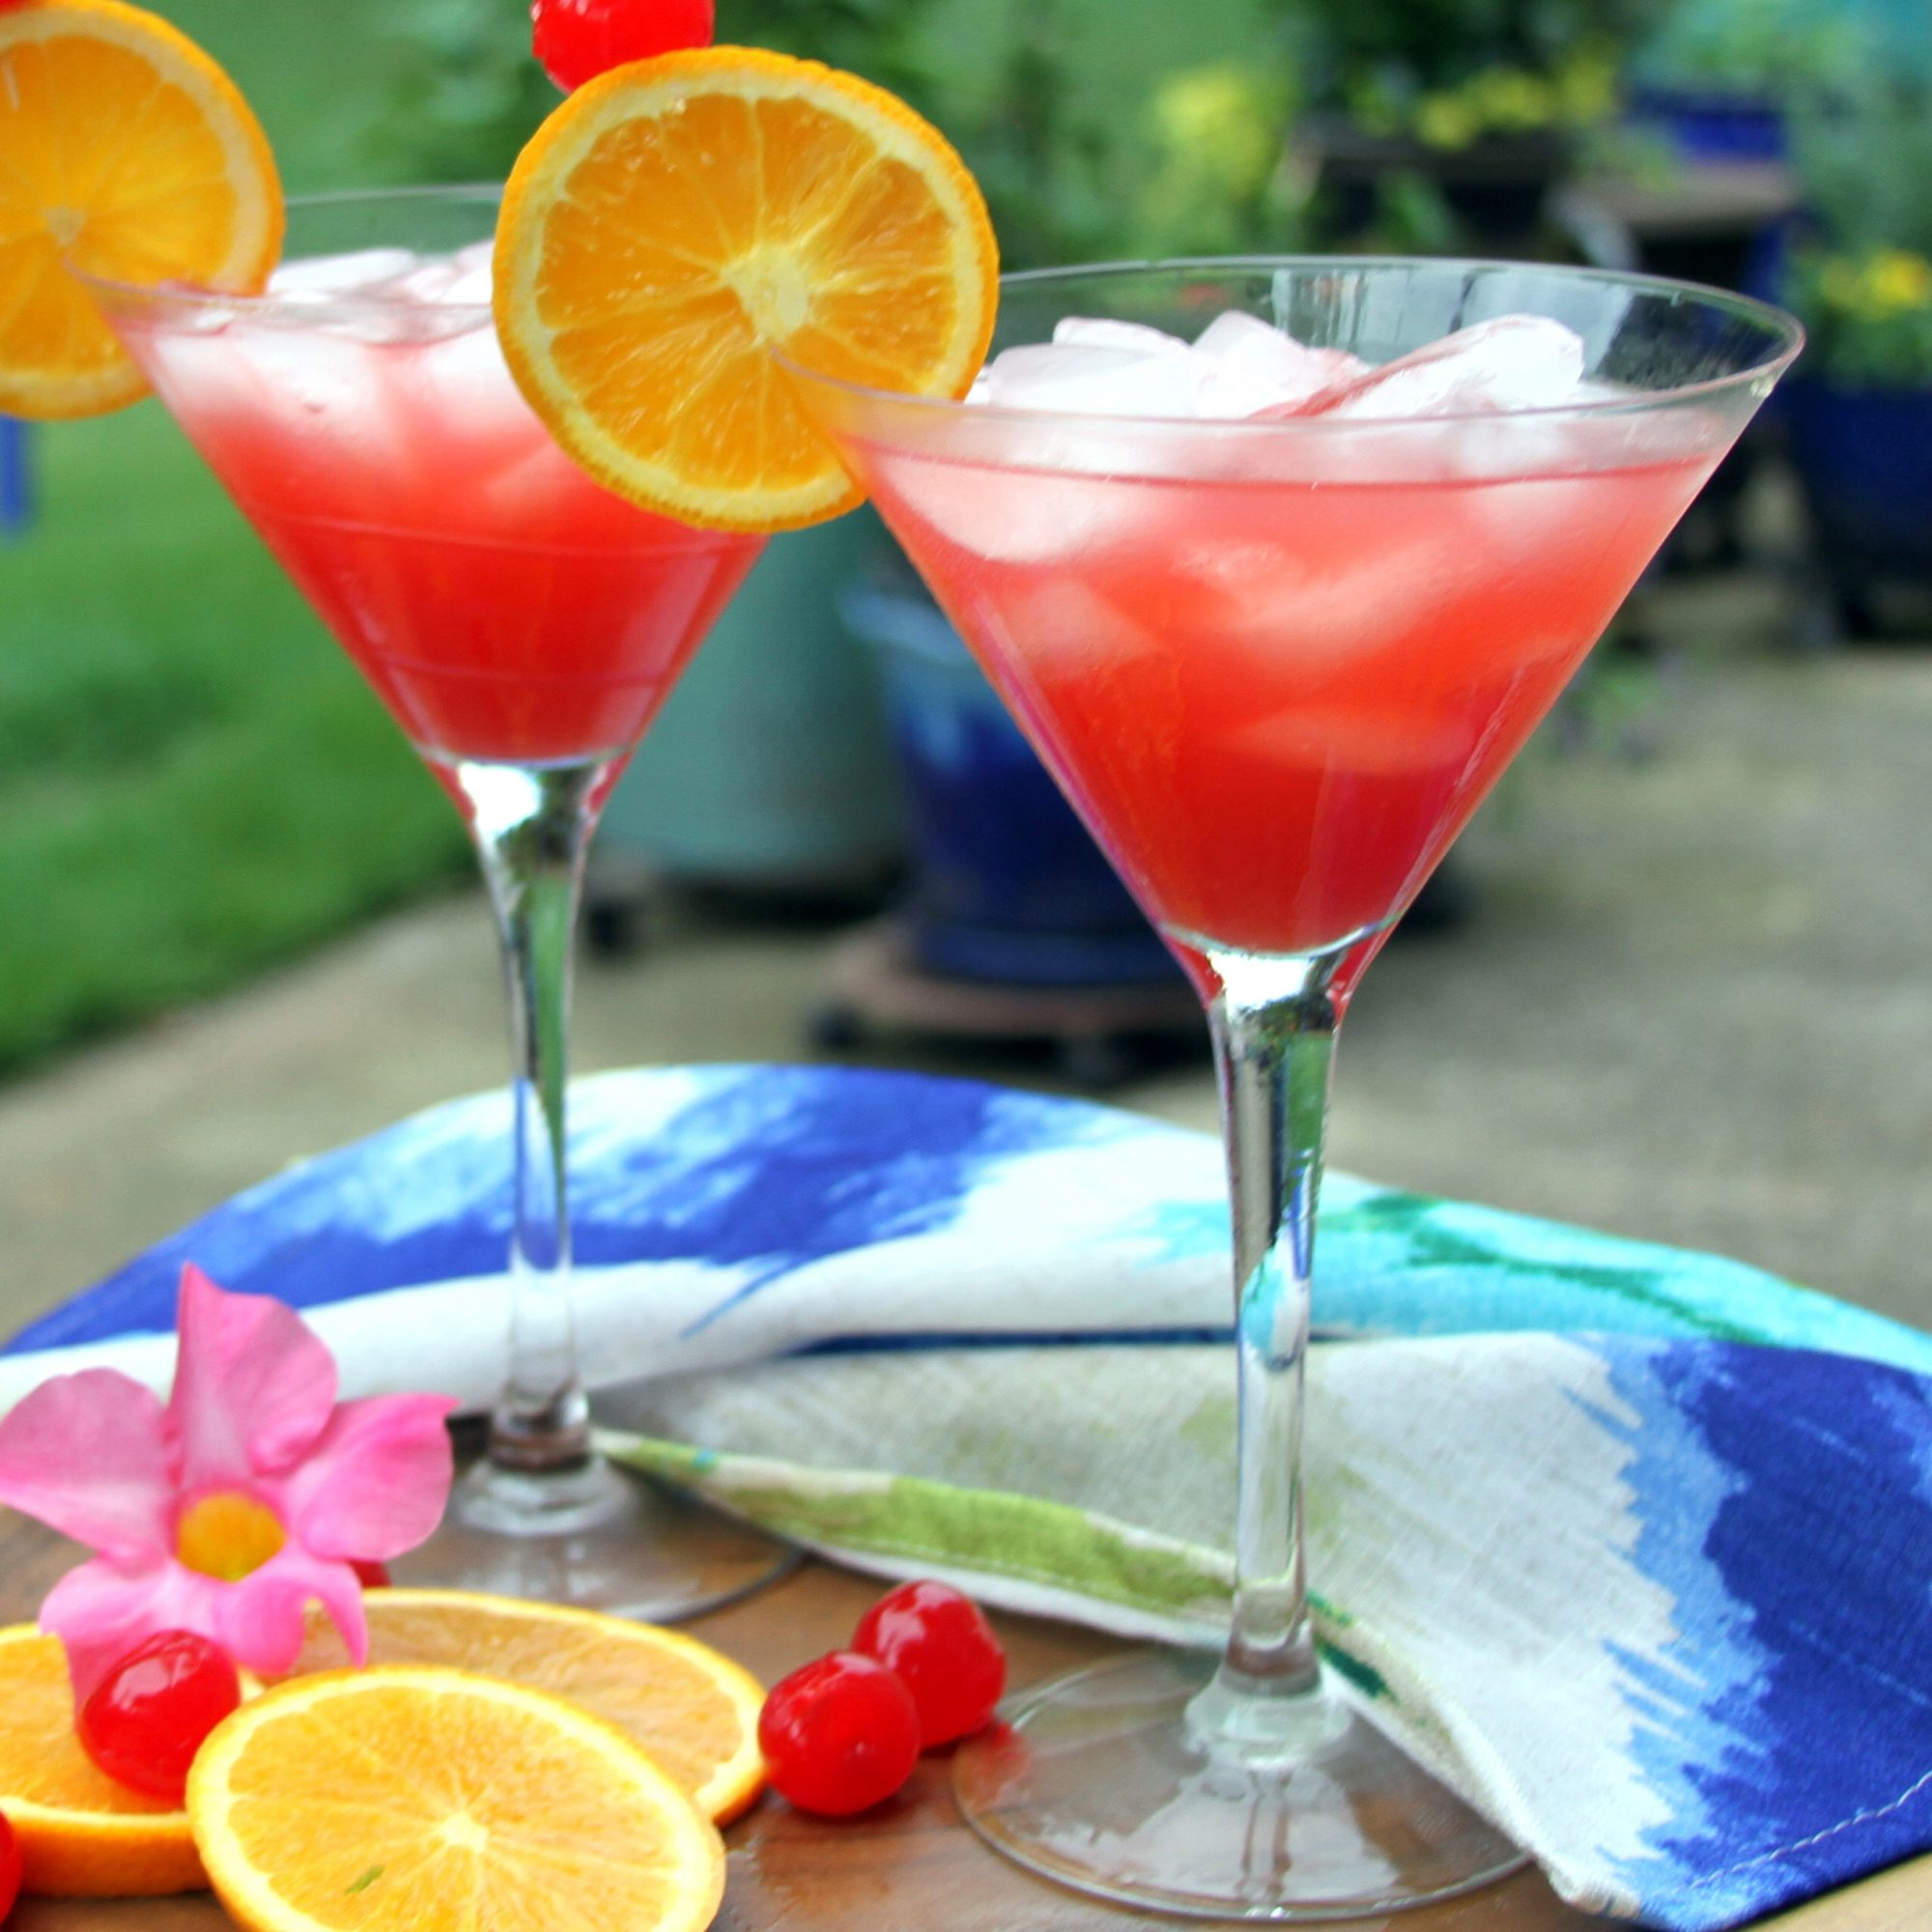 Two martini glasses with cranberry punch and orange slice garnishes